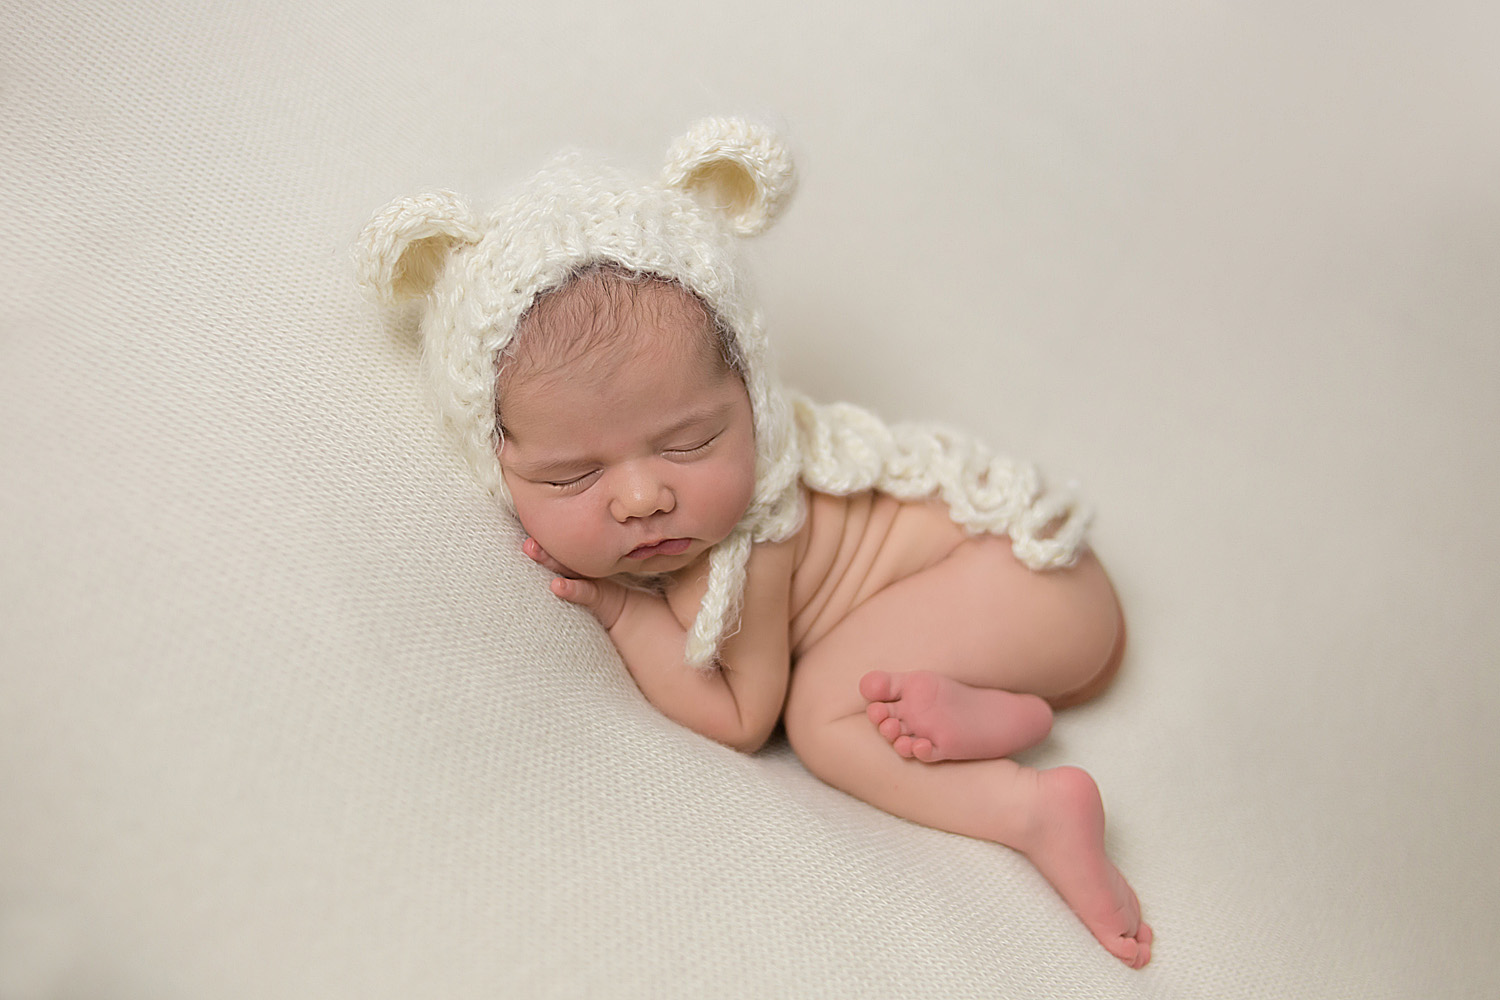 Newborn photoshoot teddy bear hat by hollywood newborn photographer